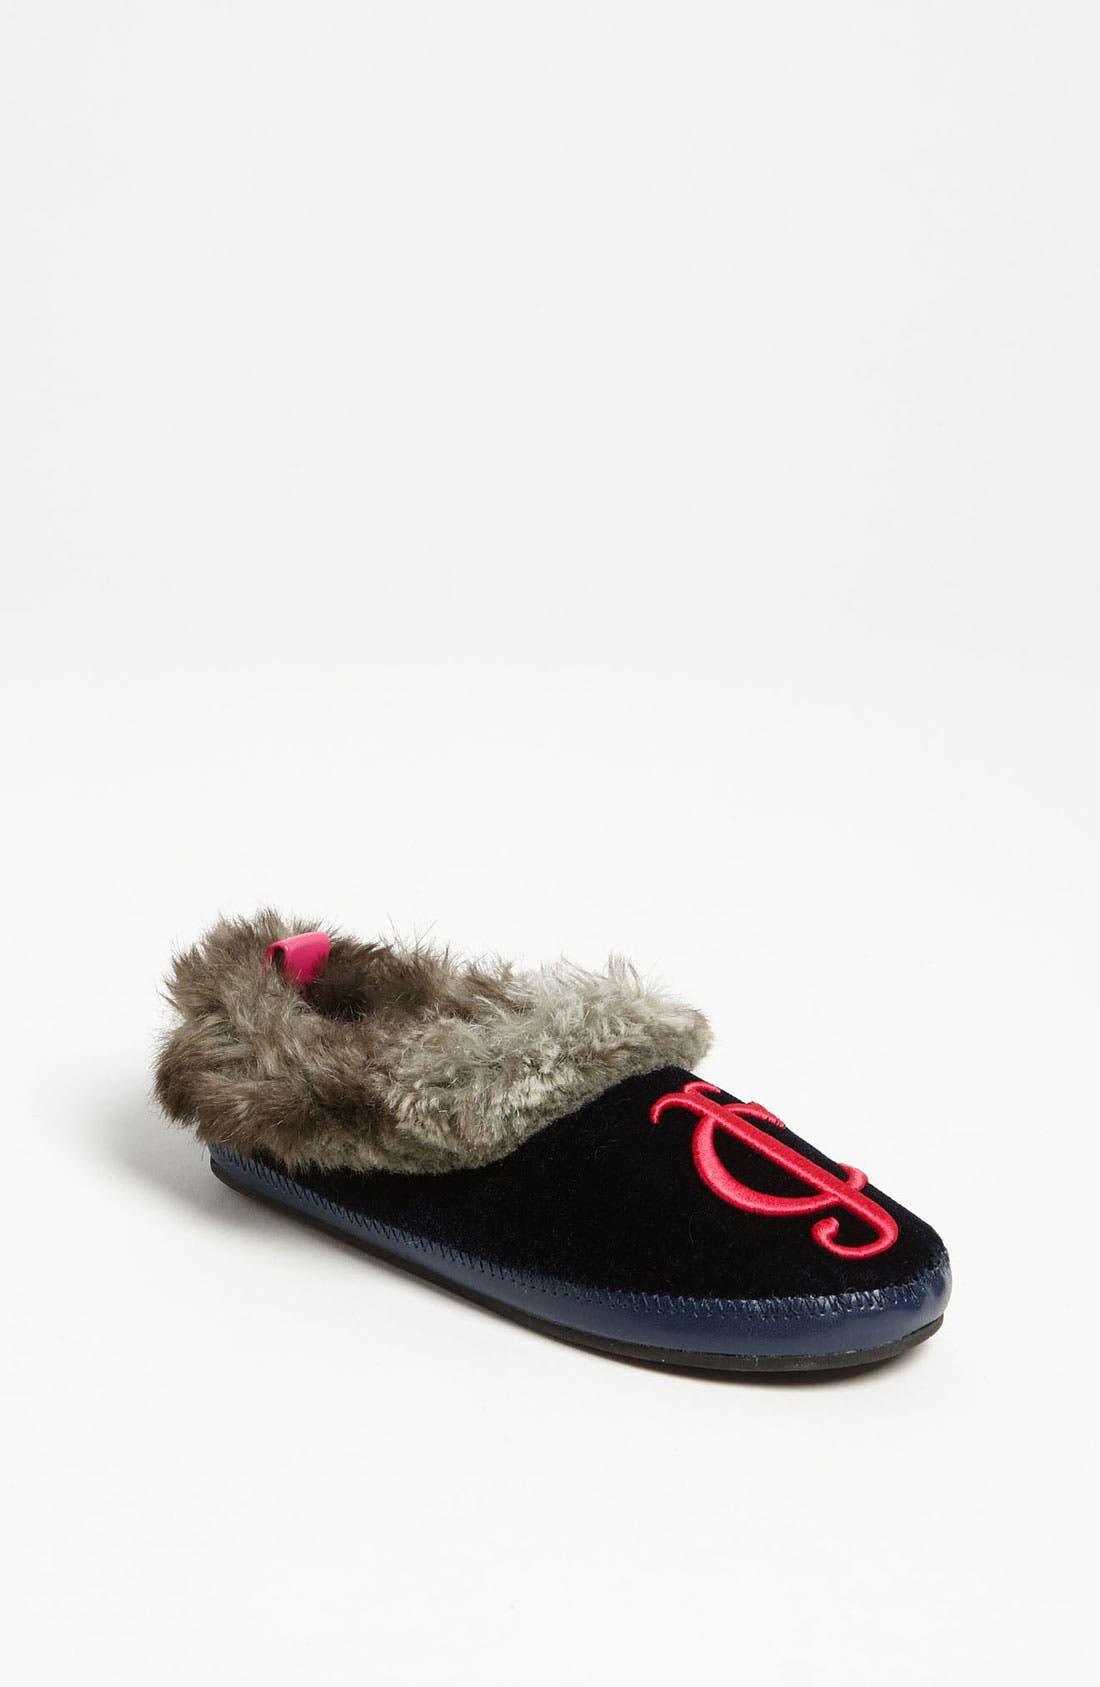 Alternate Image 1 Selected - Juicy Couture 'Kelly' Slipper (Toddler, Little Kid & Big Kid)